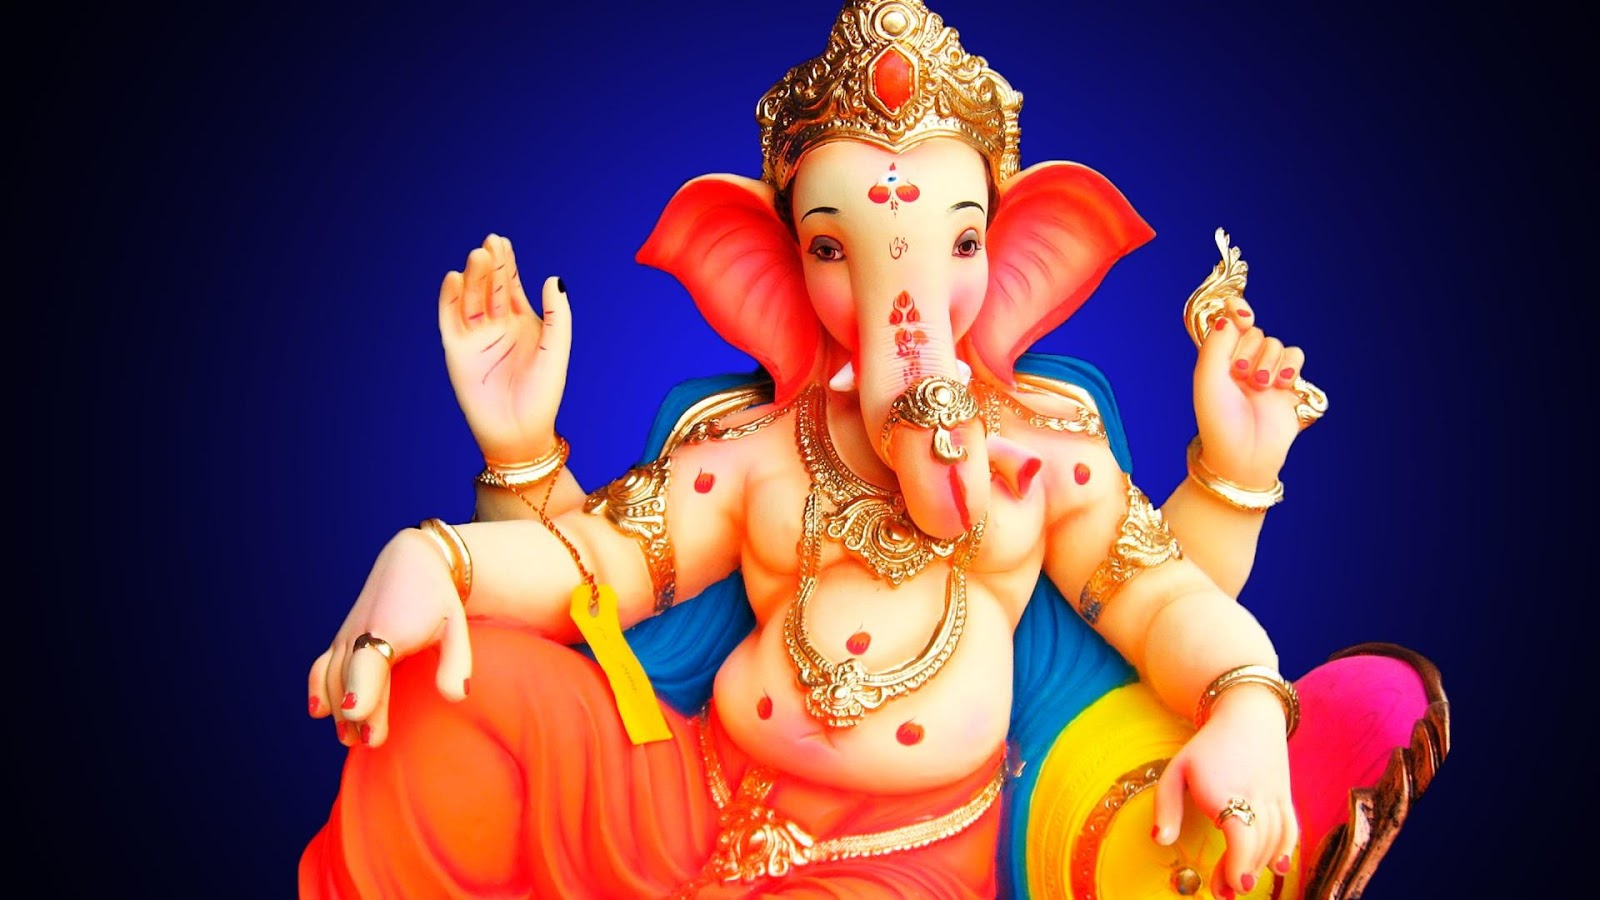 Hd wallpaper ganesh - Lord Ganesha Wallpapers Hd 4k Screenshot